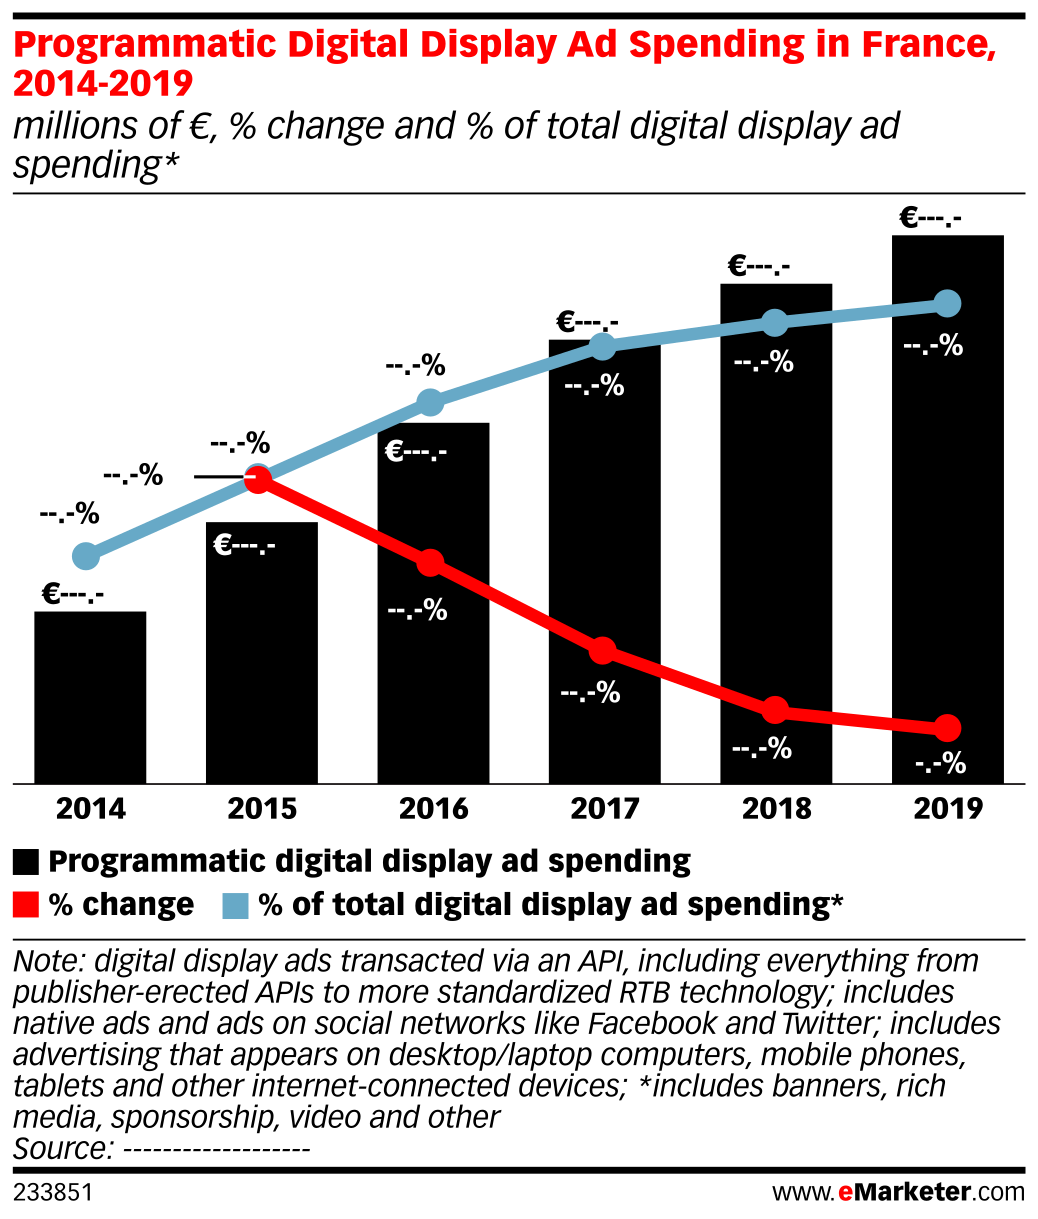 Programmatic Digital Display Ad Spending in France, 2014-2019 (millions of €, % change and % of total digital display ad spending*)